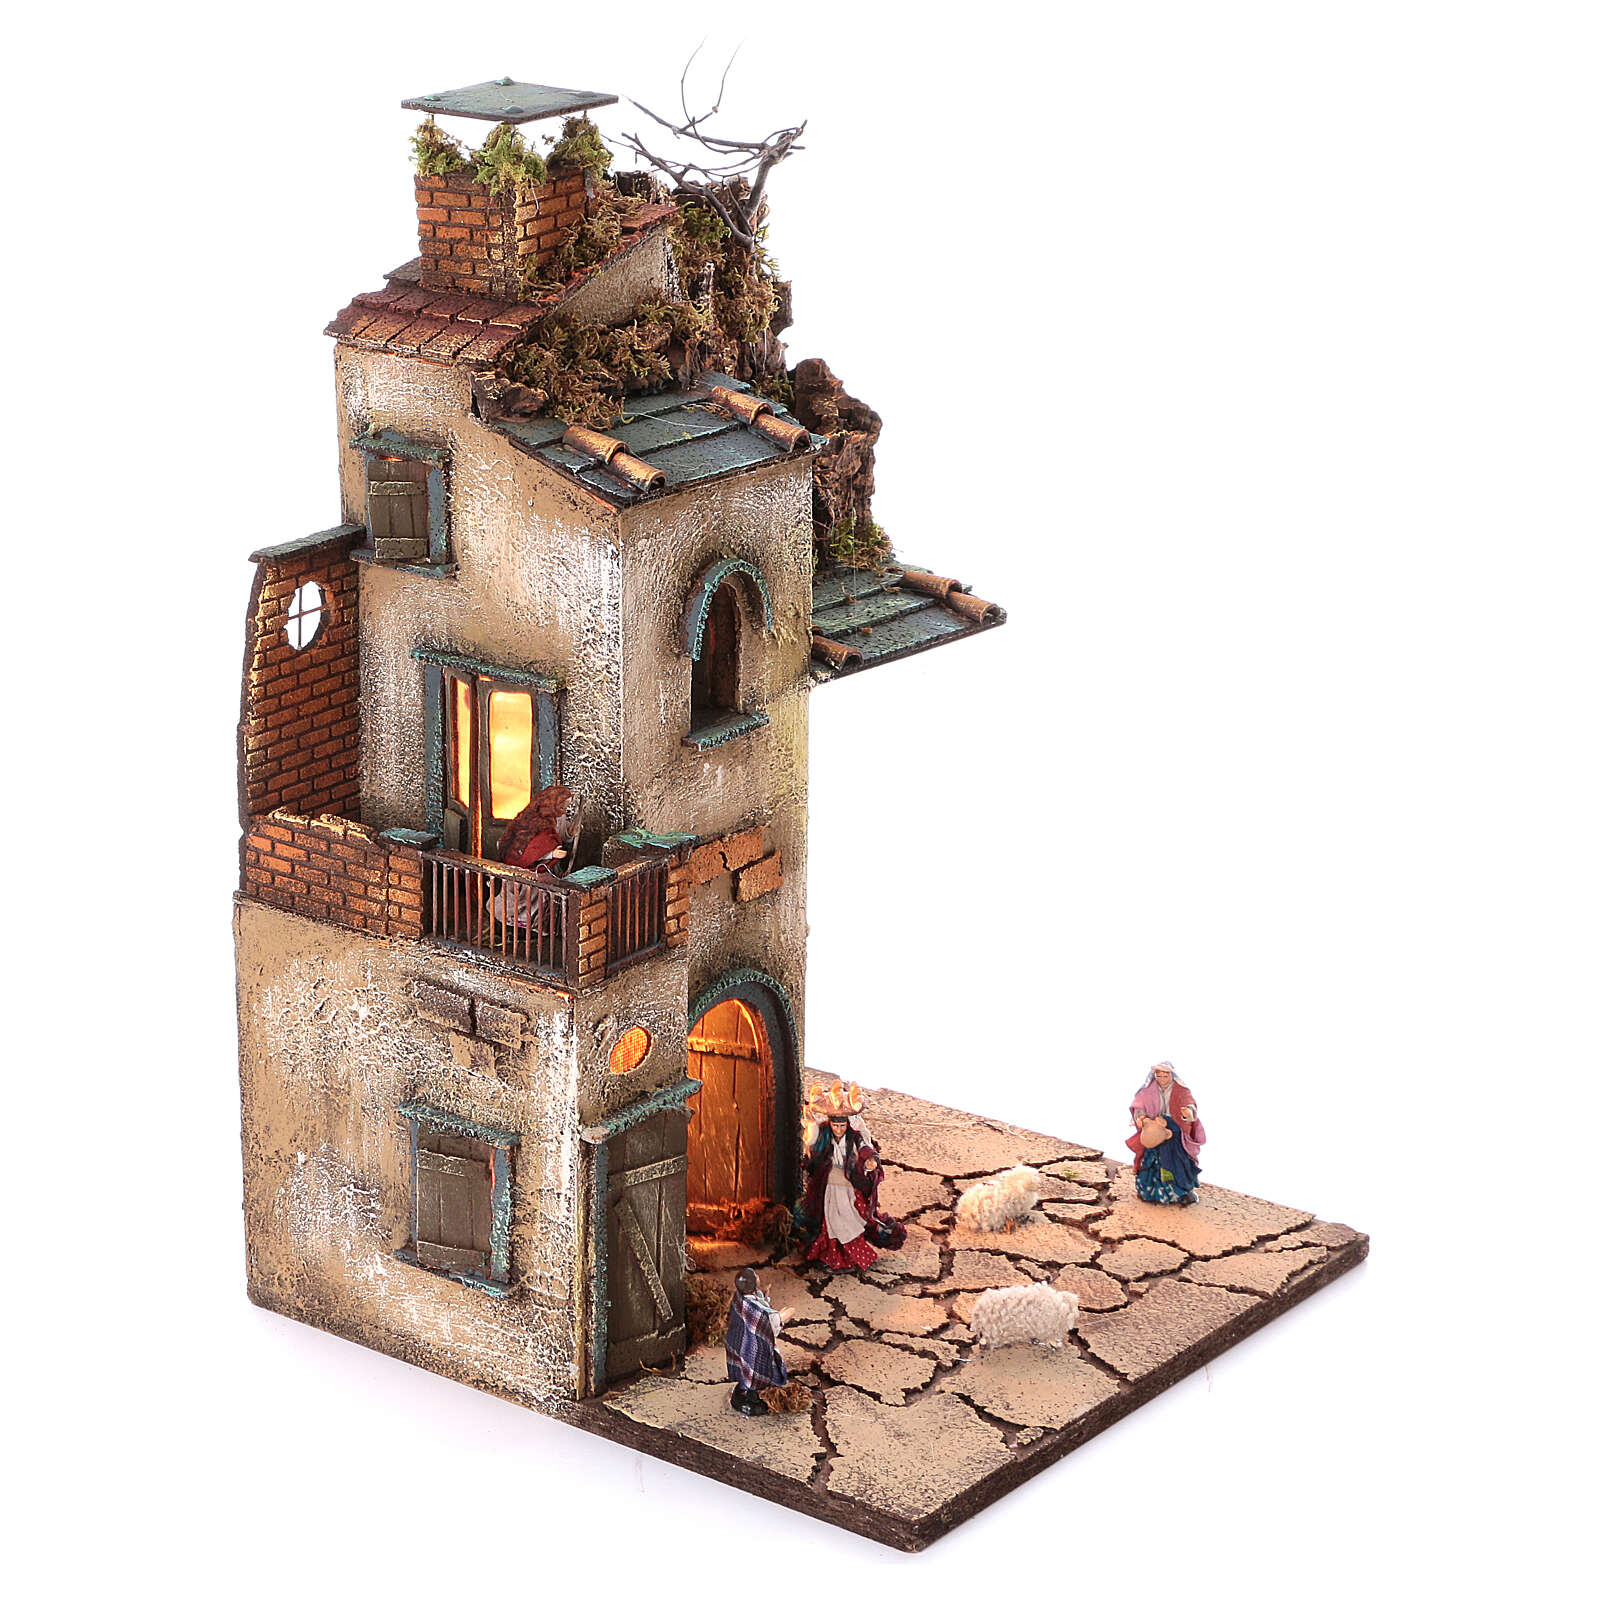 Neapolitan nativity village with 8 cm figures and oven 55x40x40 module 4 4